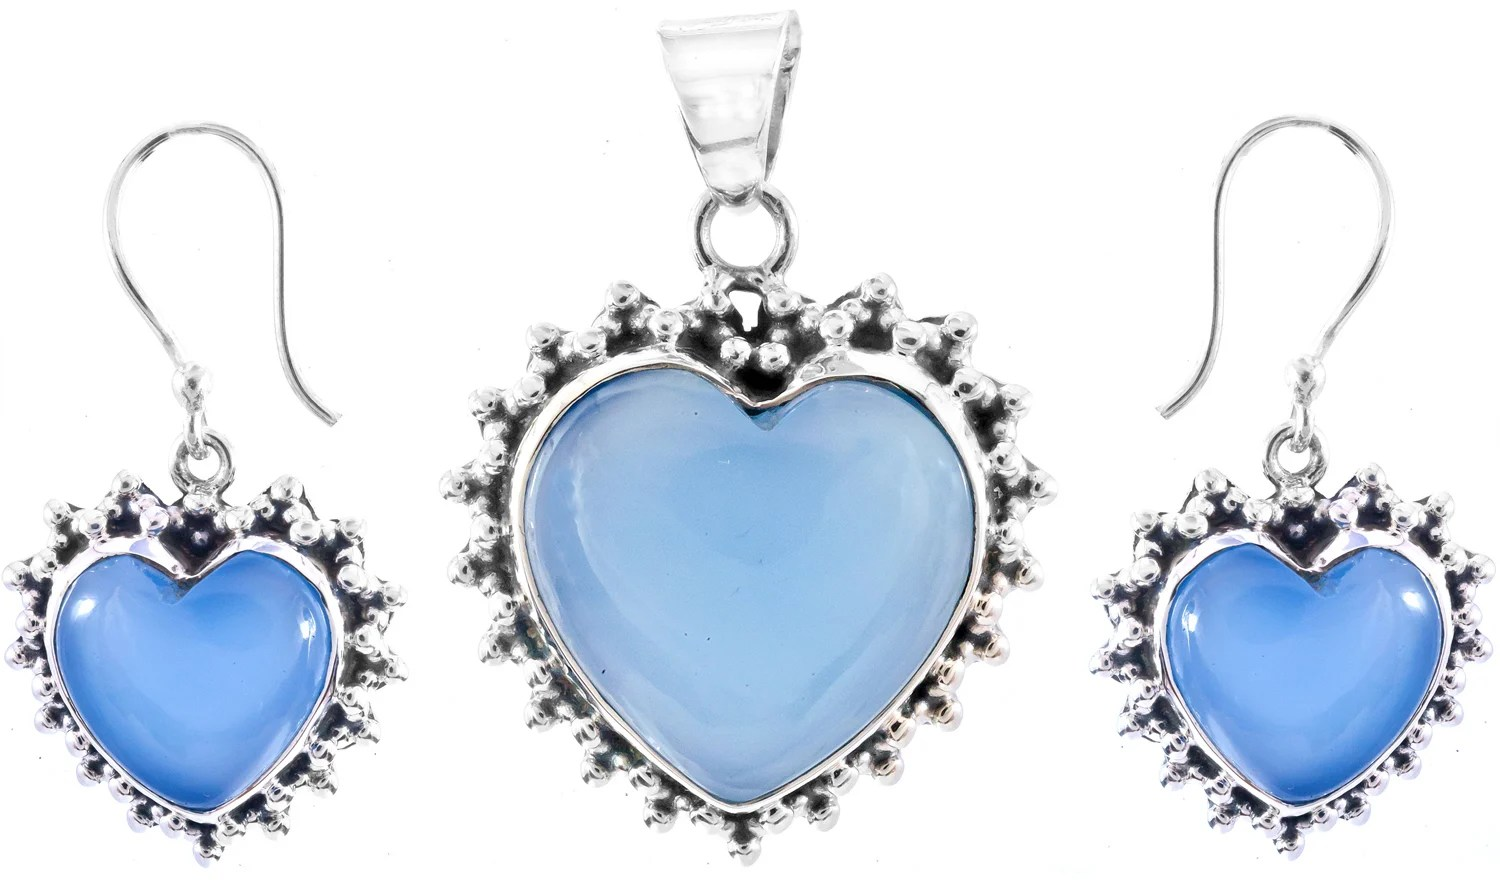 Blue Chalcedony Heart Shape Pendant With Matching Earrings Set